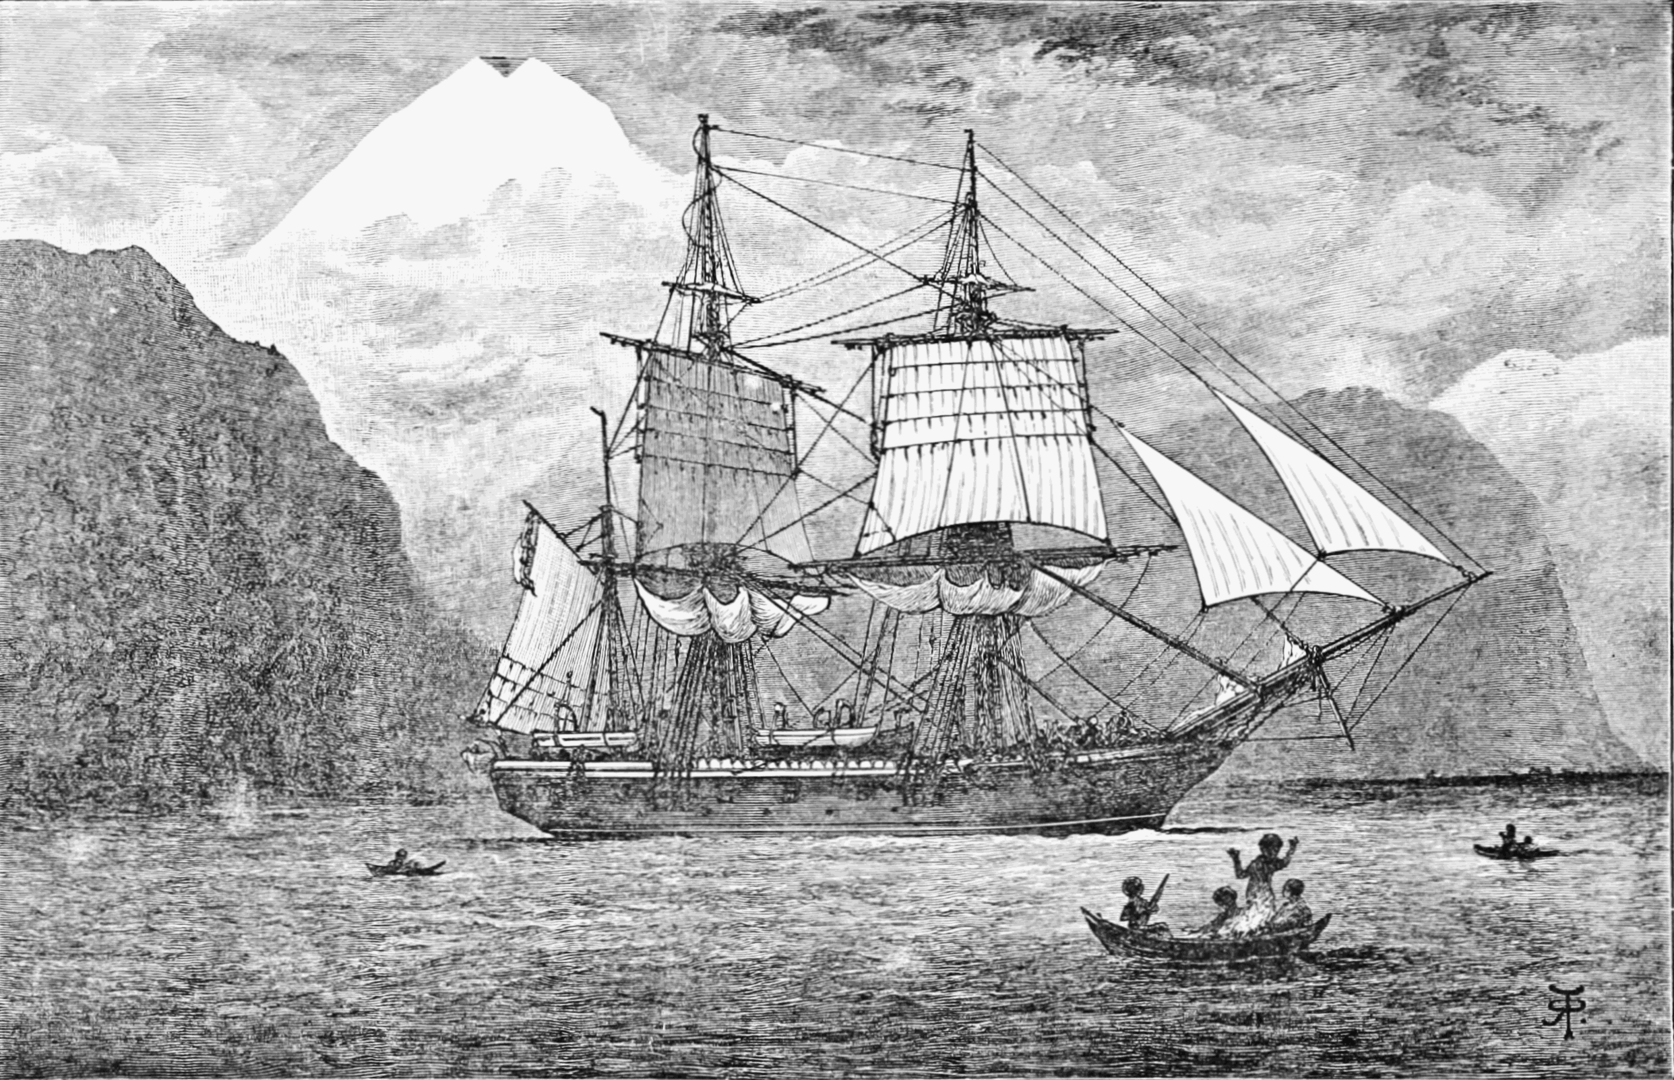 HMS Beagle depicted in a contemporary reproduction